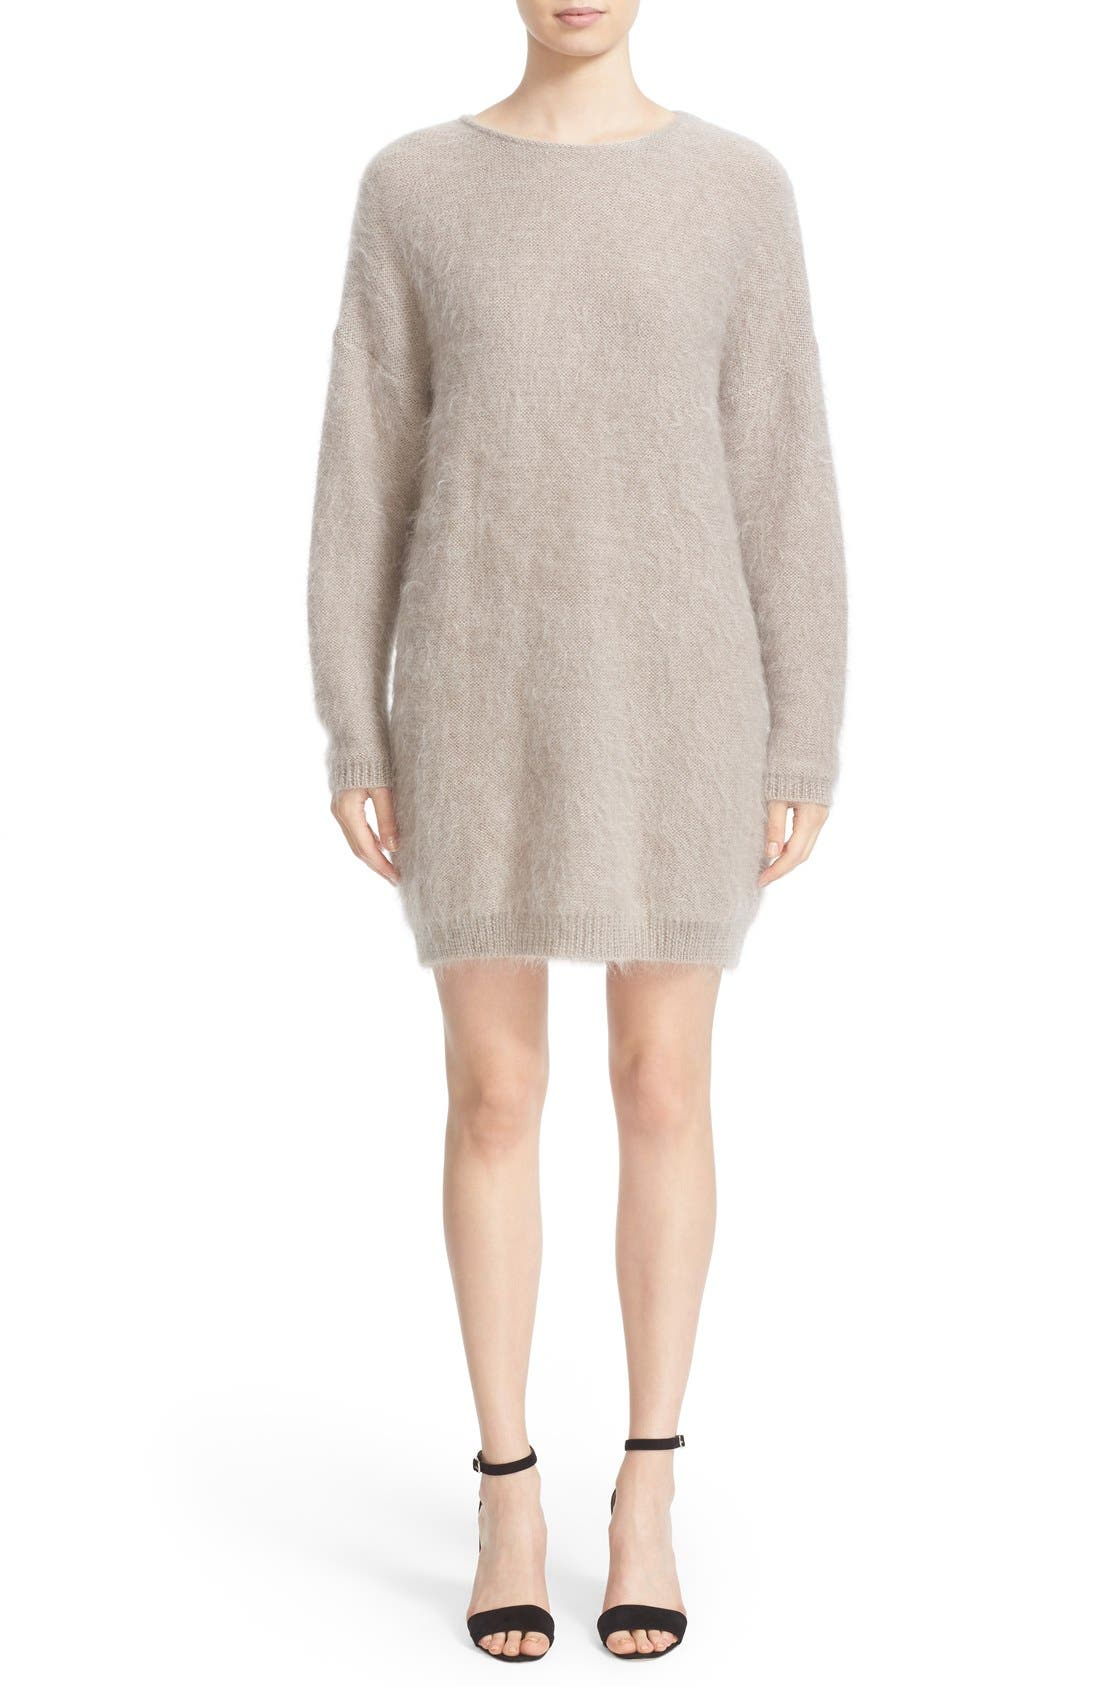 Alternate Image 1 Selected - Eleventy Mohair & Silk Sweater Dress